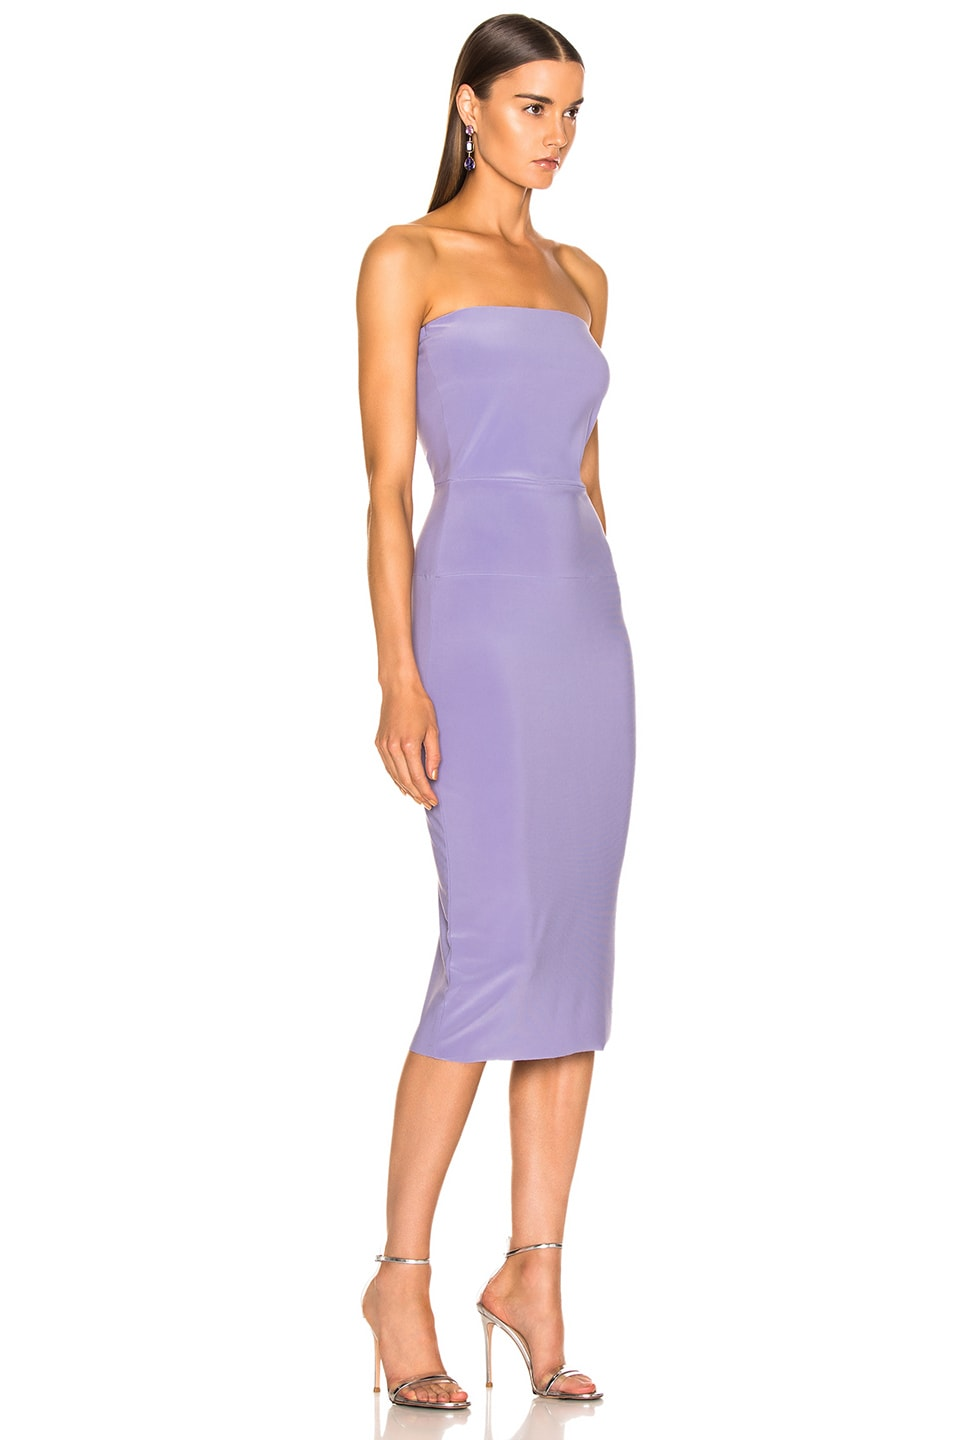 Image 2 of Norma Kamali for FWRD Strapless Dress in Violet